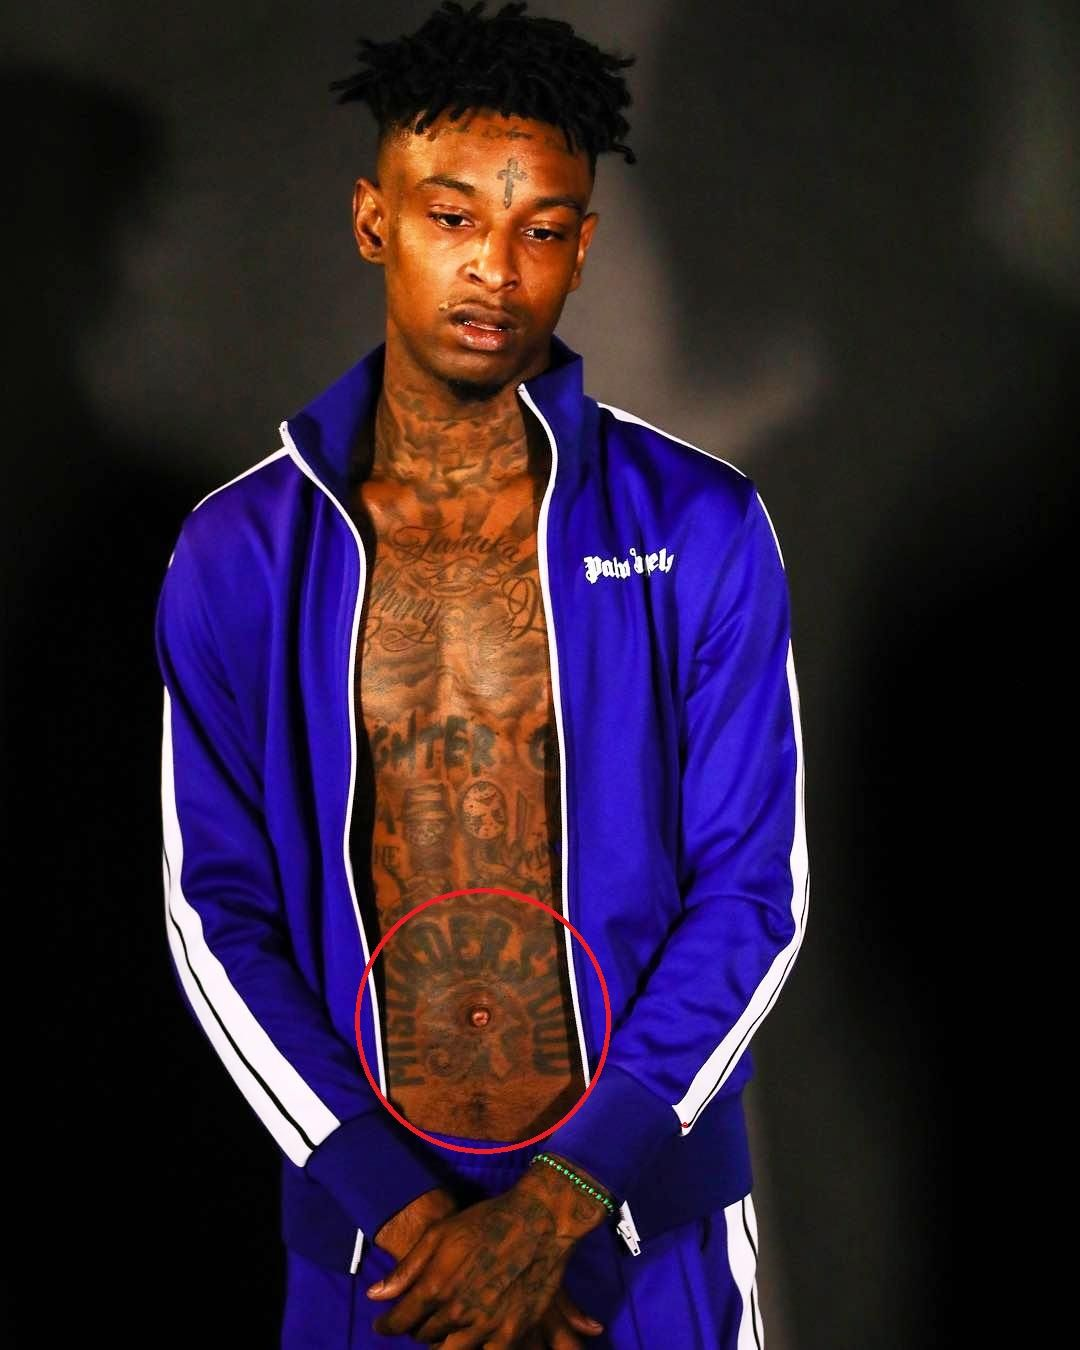 misunderstood-21 savage tattoos